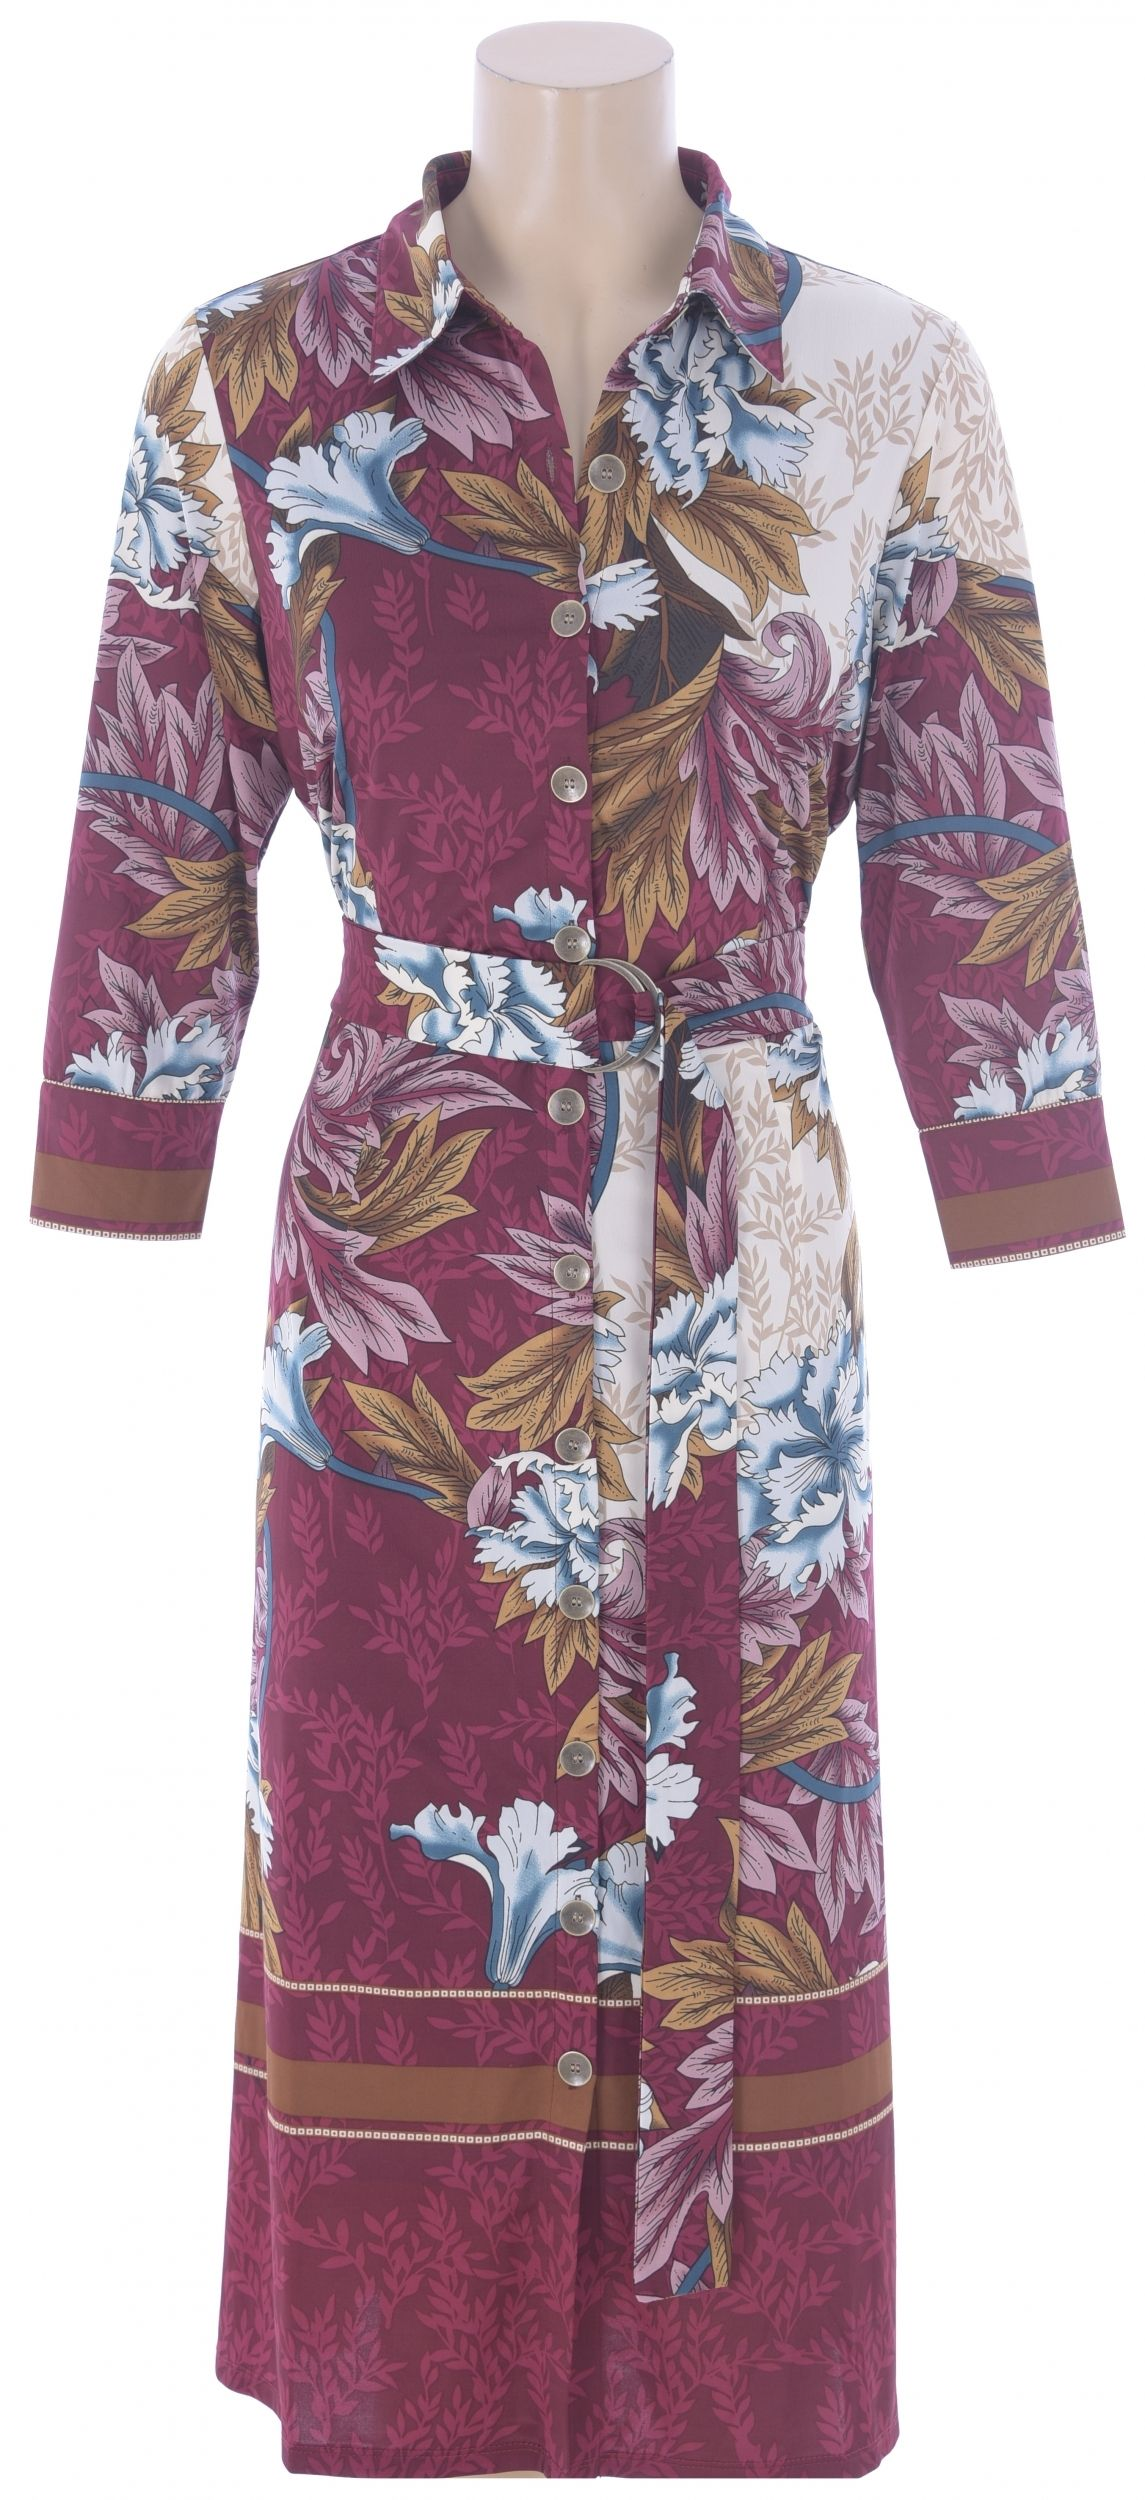 K Design Gold Button Midi Dress With A Burgandy, Blue, Tan/cream & Pink Print